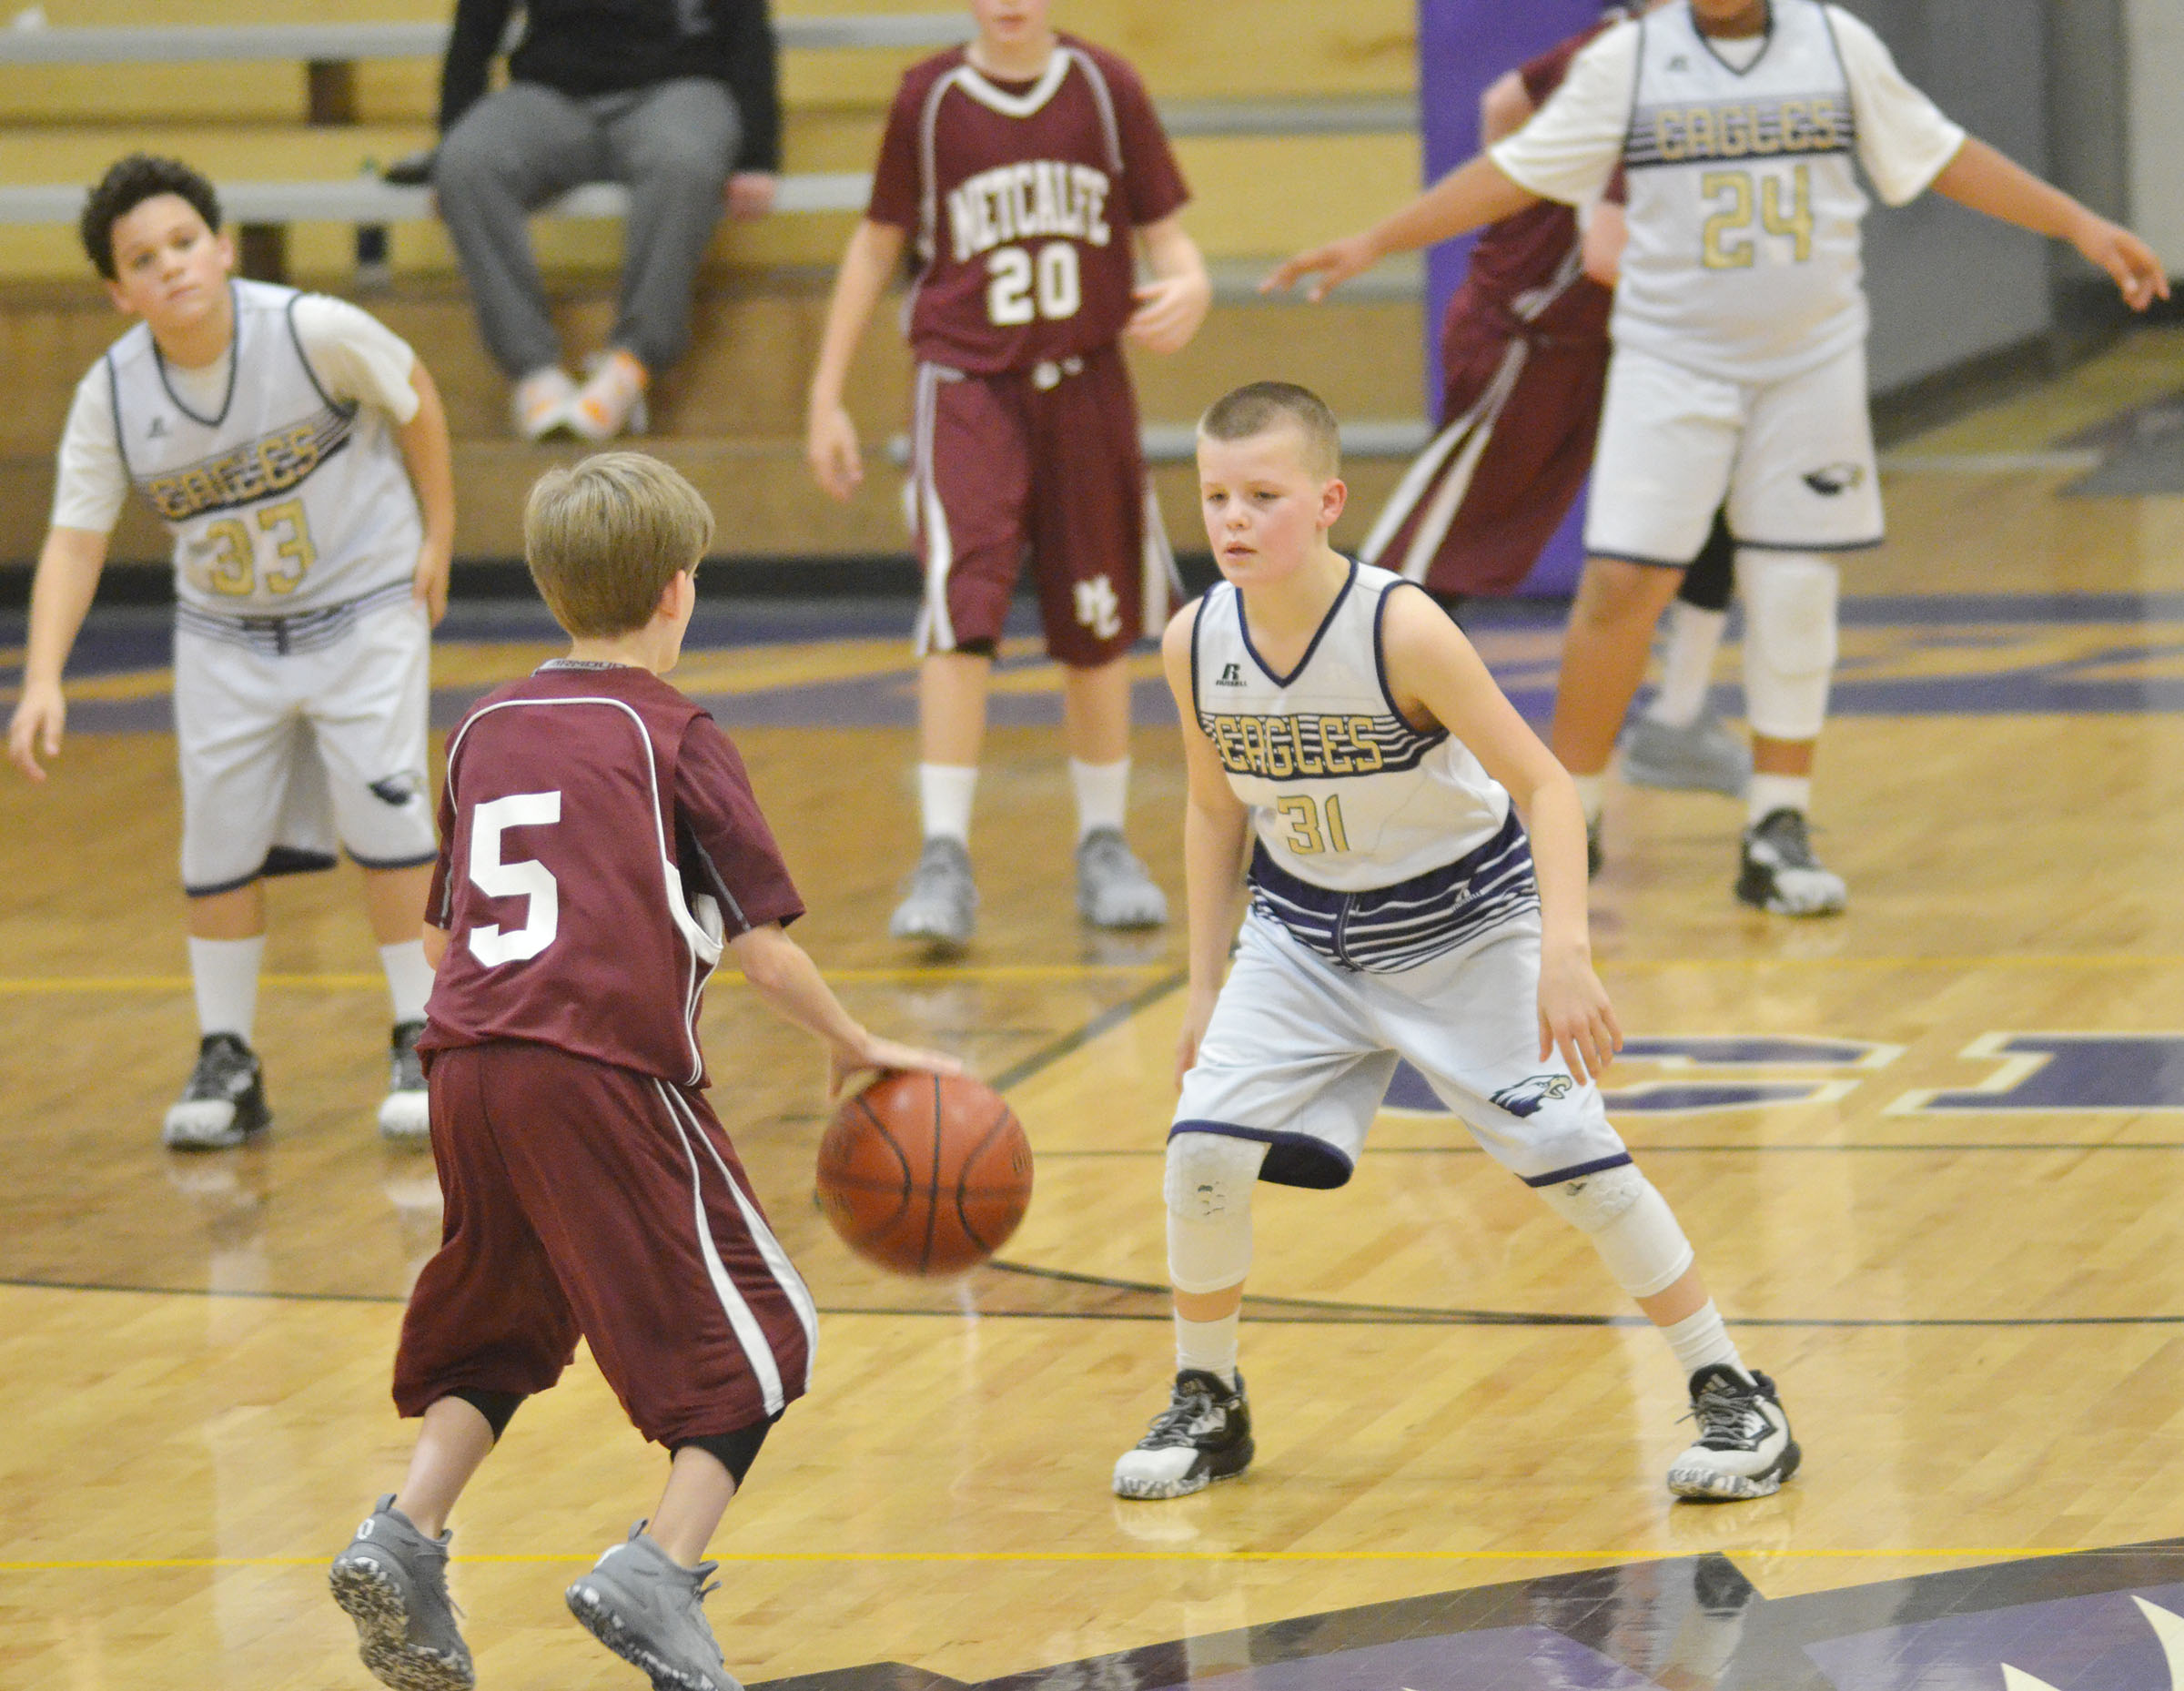 CMS sixth-grader Konner Forbis plays defense.